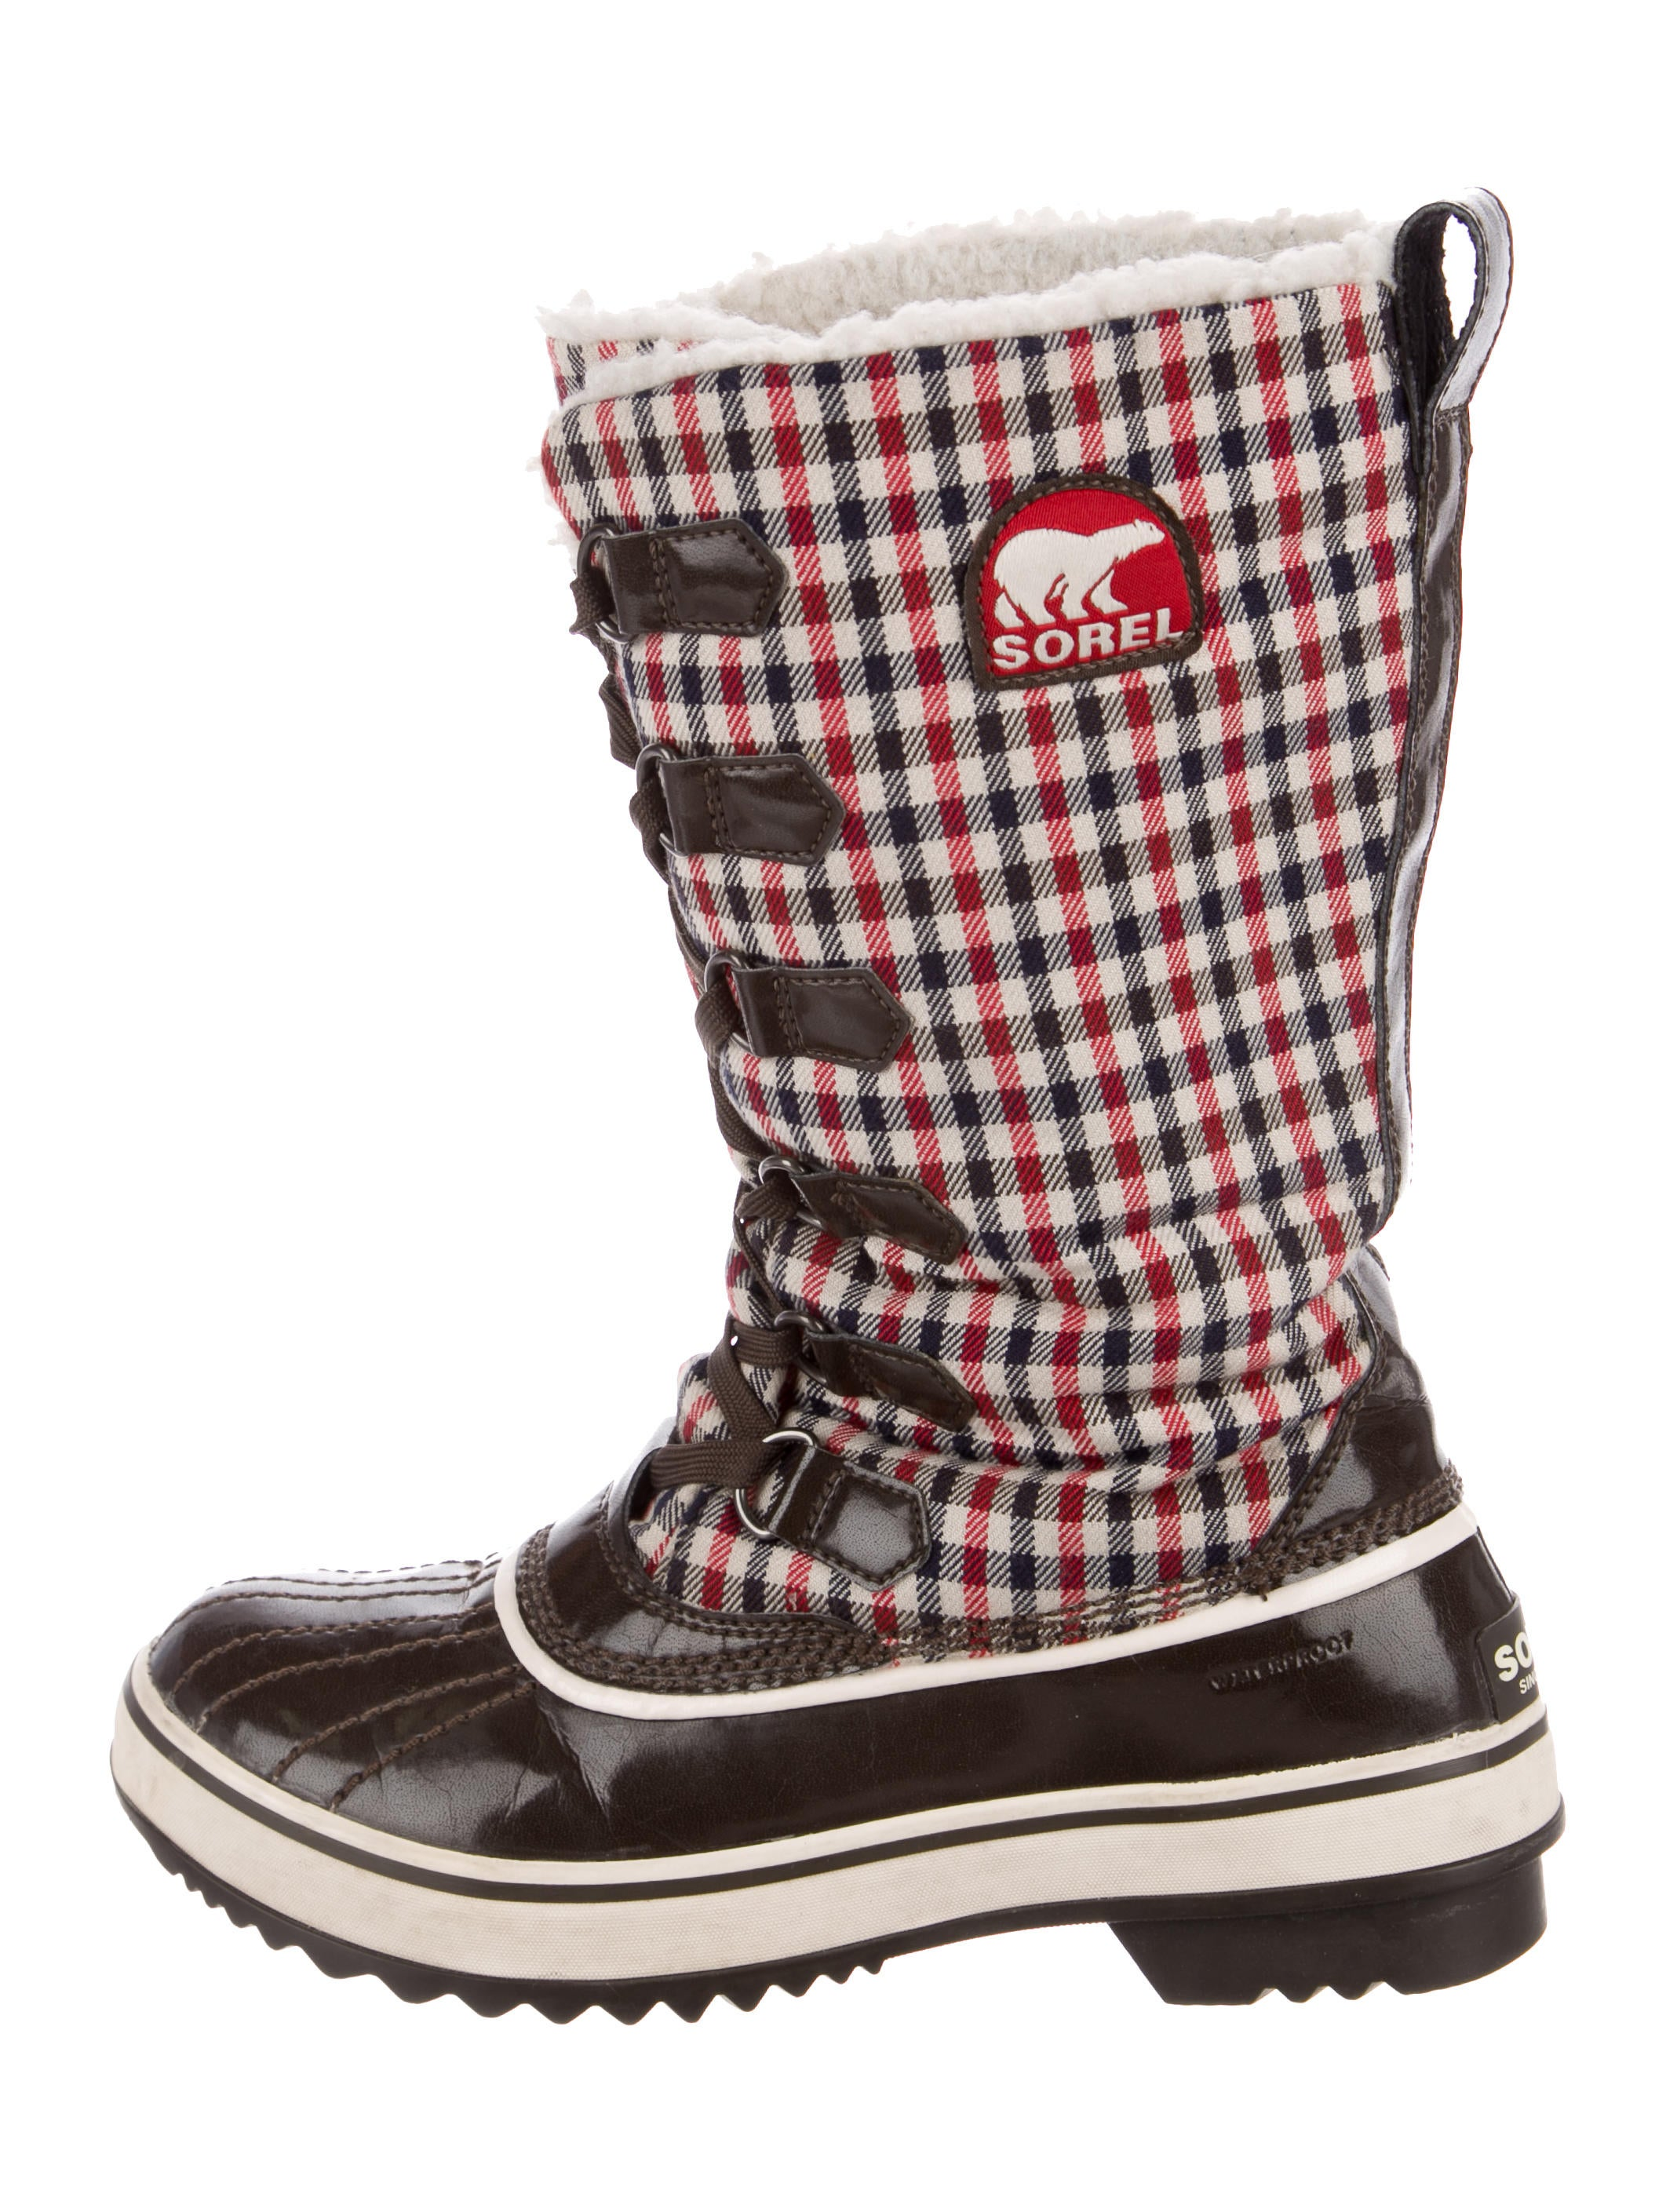 buy cheap excellent Sorel Gingham Snow Boots clearance clearance online ebay free shipping the cheapest jdUkT